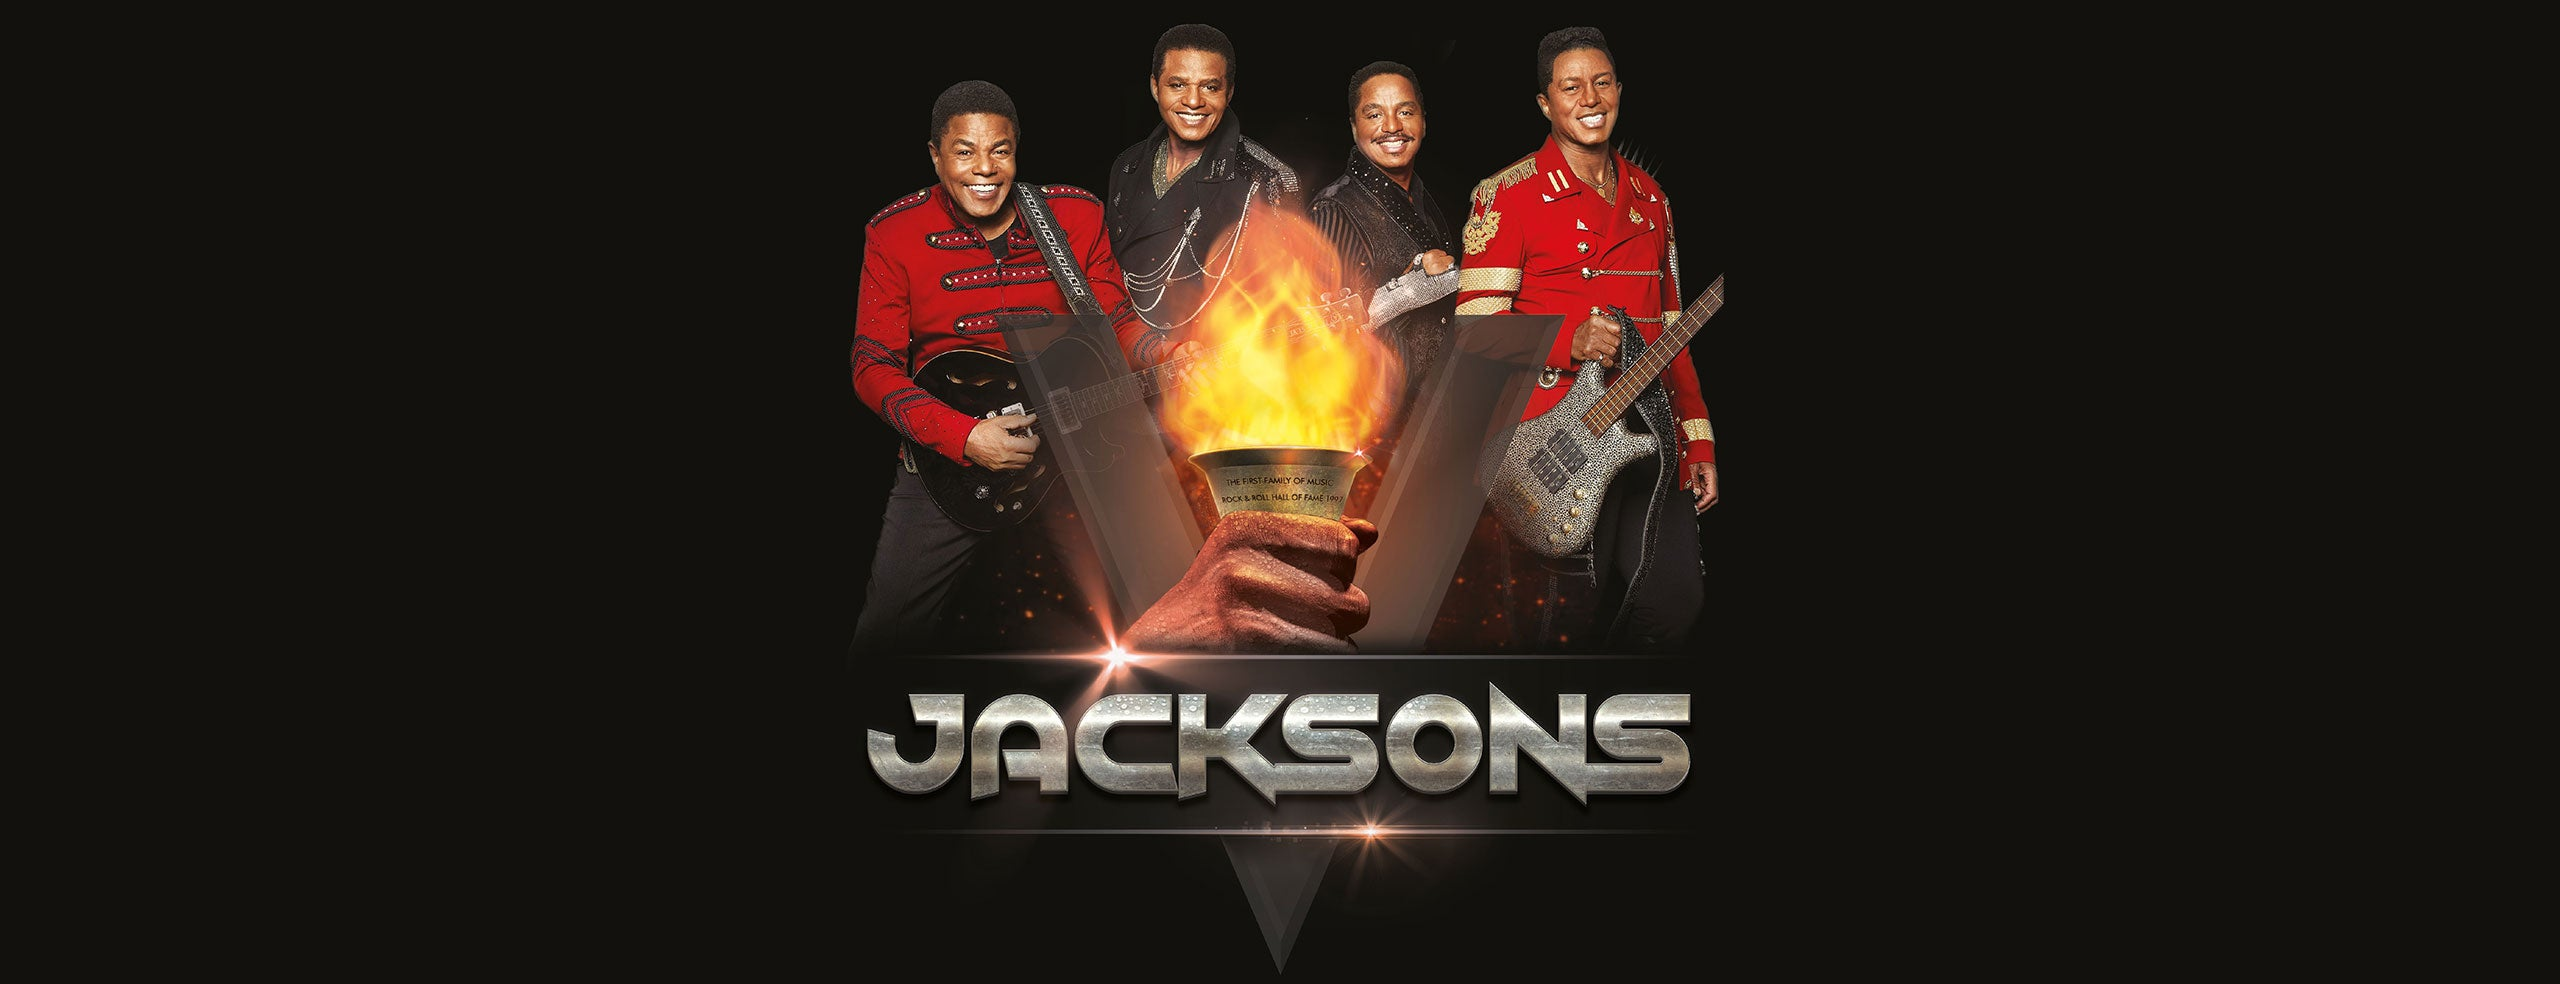 2560x984---Slider-Big-Jacksons.jpg